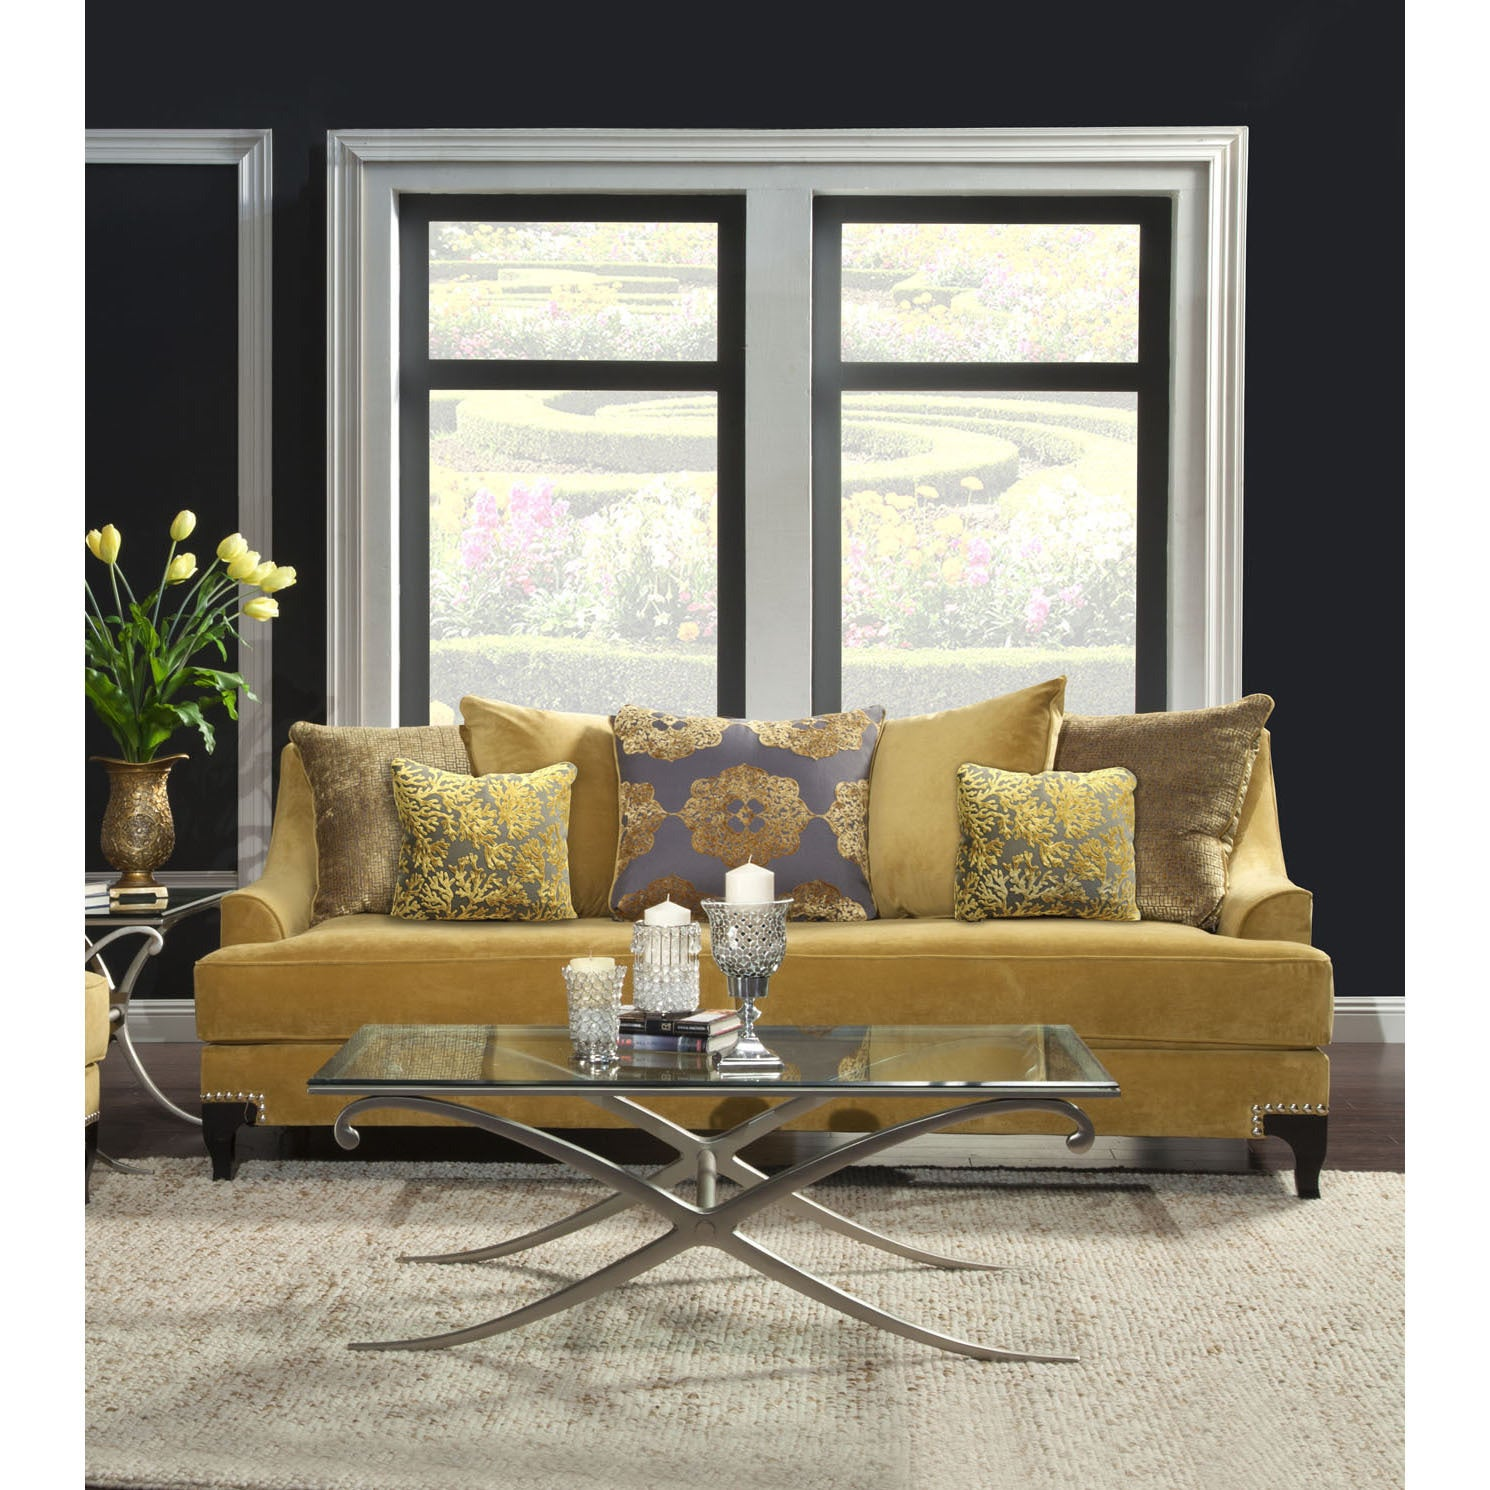 Silver Sofas Couches & Loveseats For Less